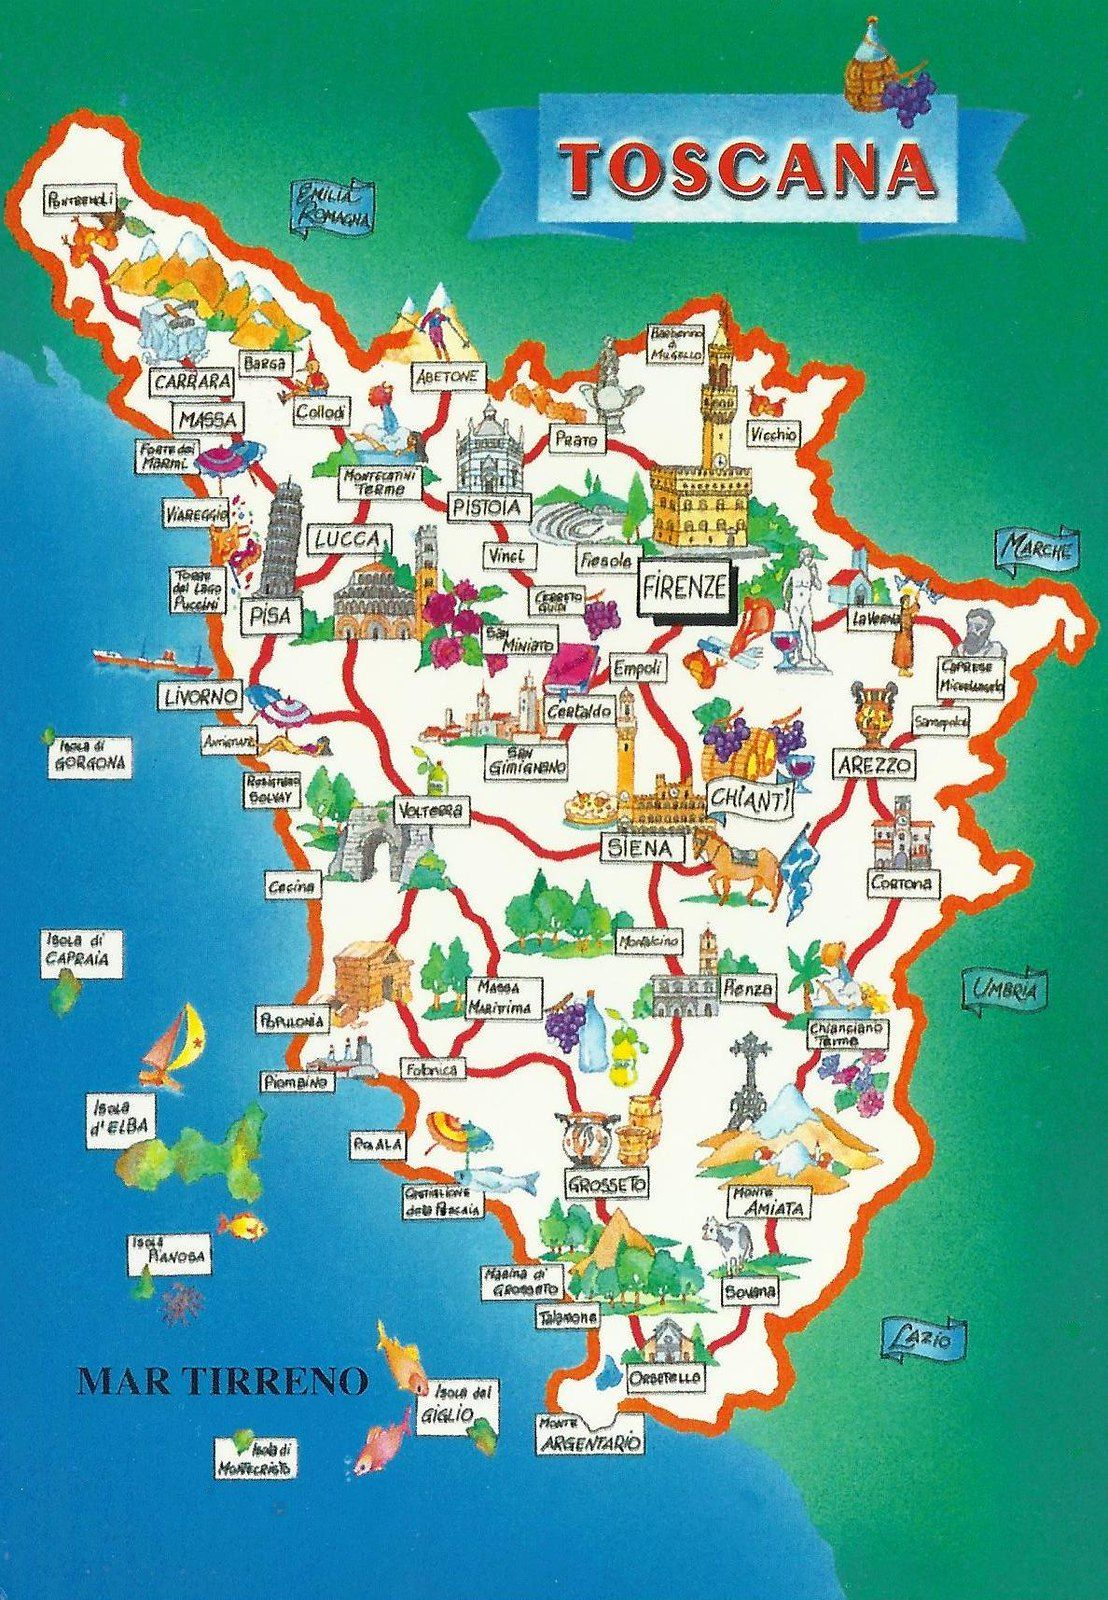 Toscana Map | Voyage in 2019 | Map of tuscany italy, Siena ... on tourist map of christchurch new zealand, tourist map of australia, tourist map of scotland, tourist map of croatia, tourist map of ireland, tourist map of albania, tourist map of mexico, tourist map of serbia, tourist map of england, tourist map of malta, tourist map of puerto vallarta, tourist map of las vegas nevada, tourist map of germany, tourist map of india, tourist map of spain, tourist map of sri lanka, tourist map of peru, tourist map of switzerland, tourist map of ontario canada, tourist map of paris france,